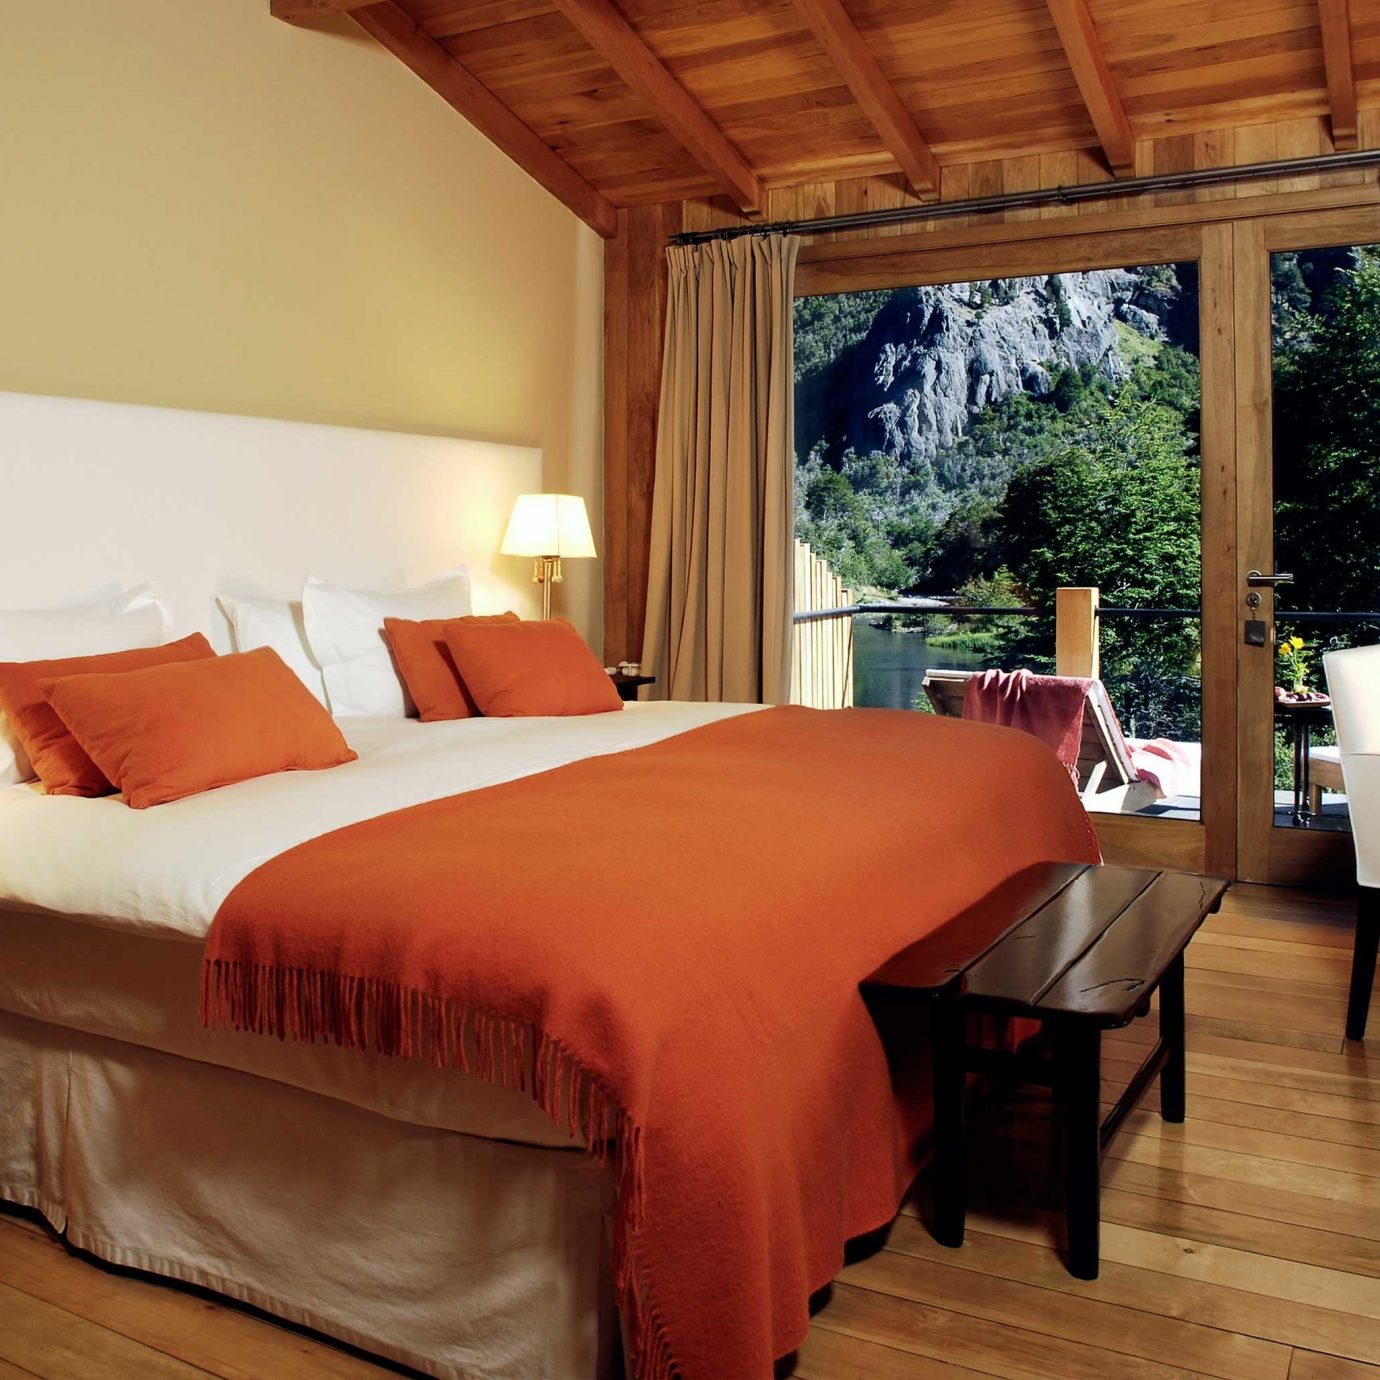 Bedroom Classic Country Eco Forest Mountains Nature Scenic views sofa property Suite cottage Villa Resort living room